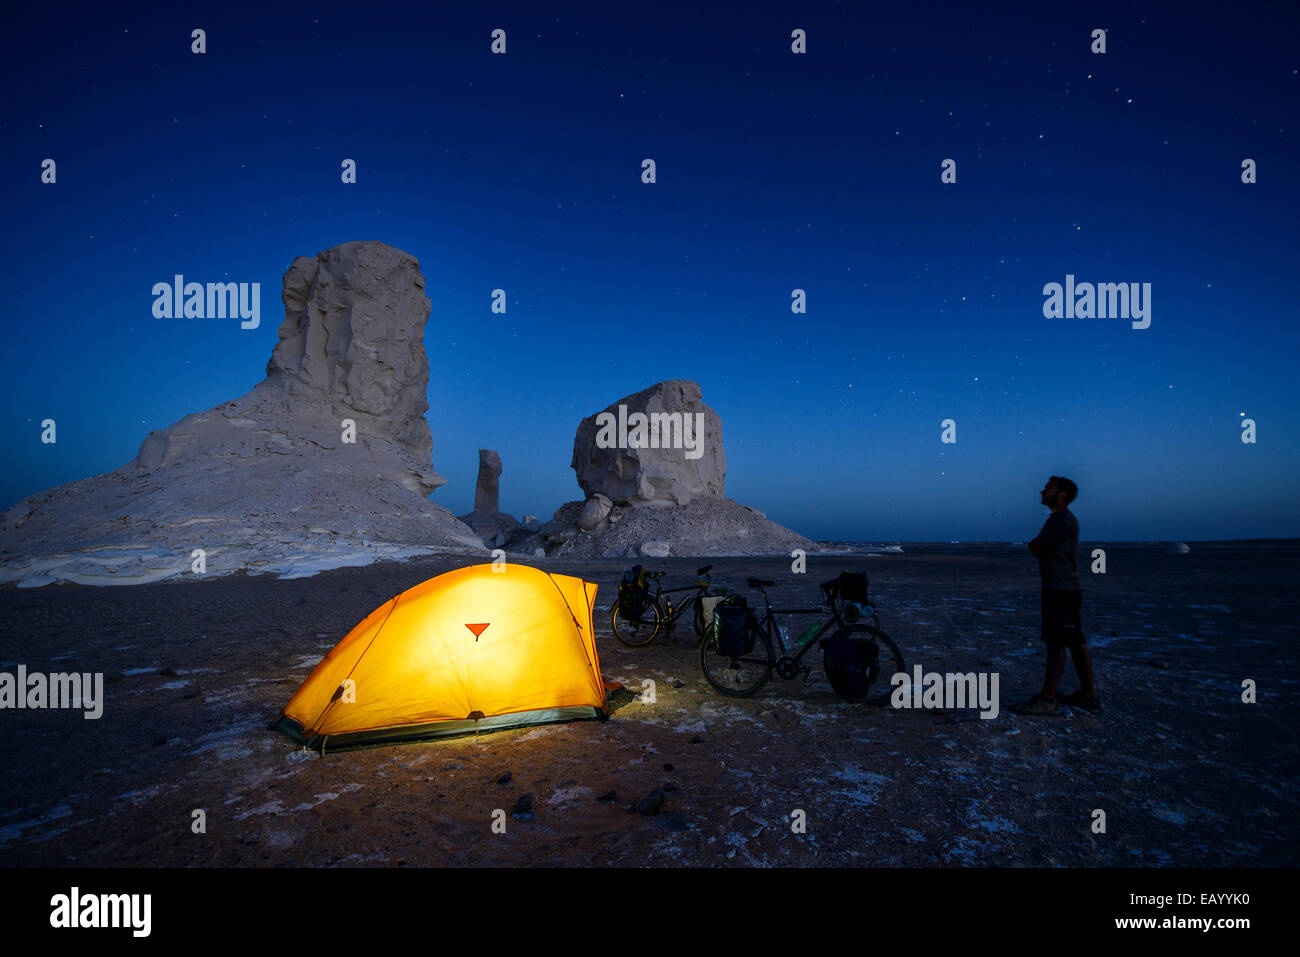 Camping in the Sahara White desert, Egypt - Stock Image